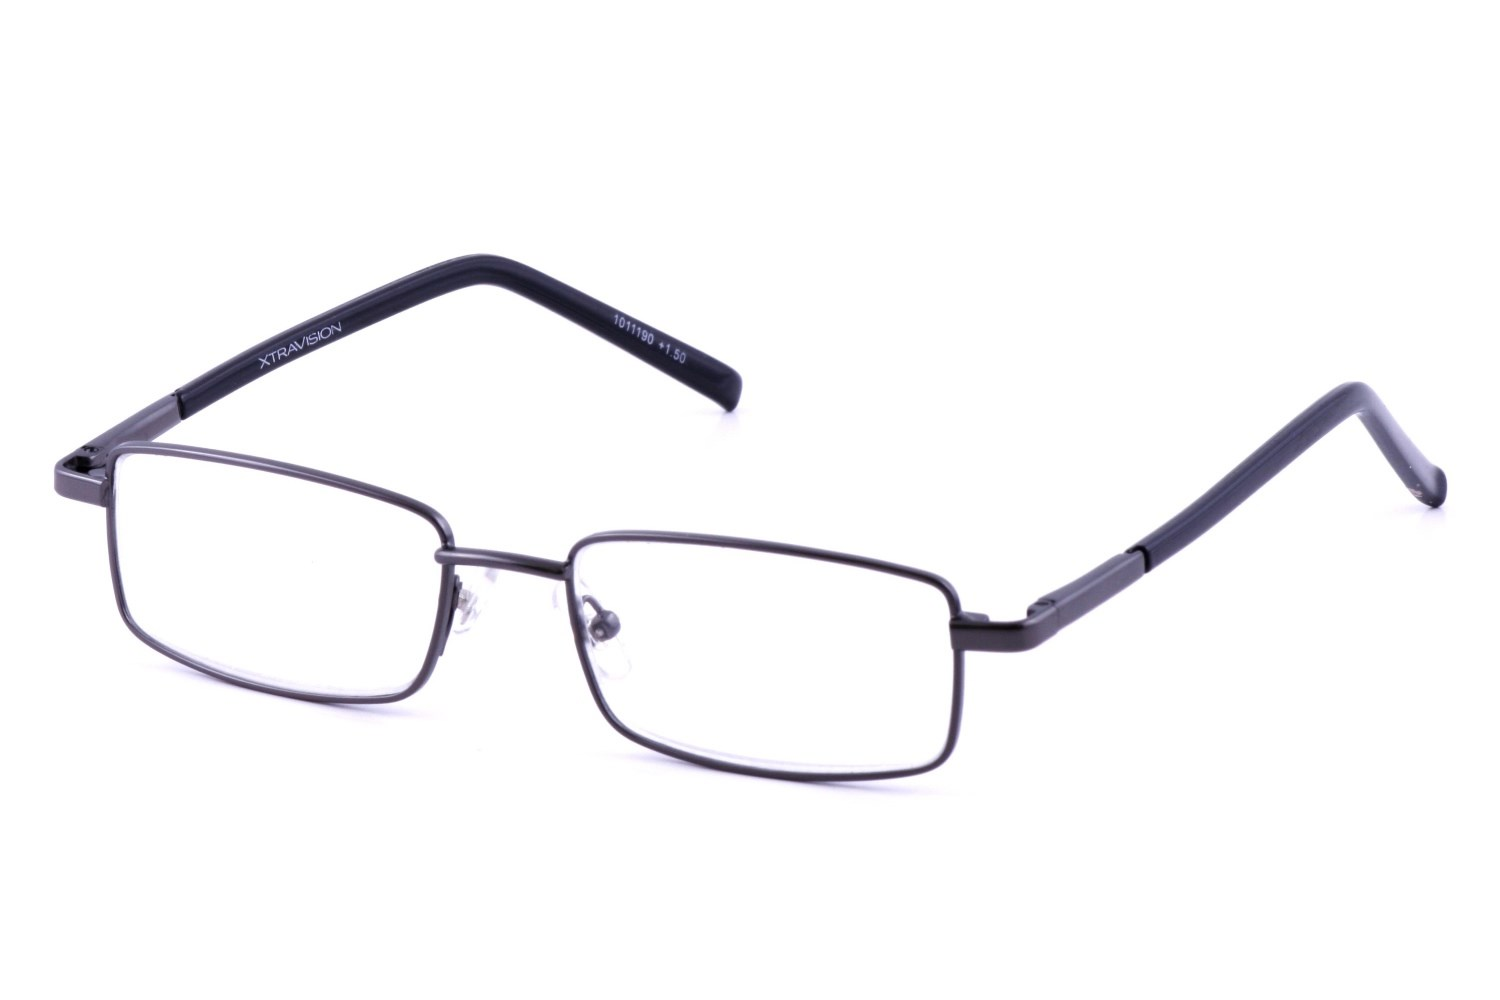 9b7524196b2 SKU-AC18395 Xtravision Ace Full Frame Reading Glasses with Cases (2 pack)  from